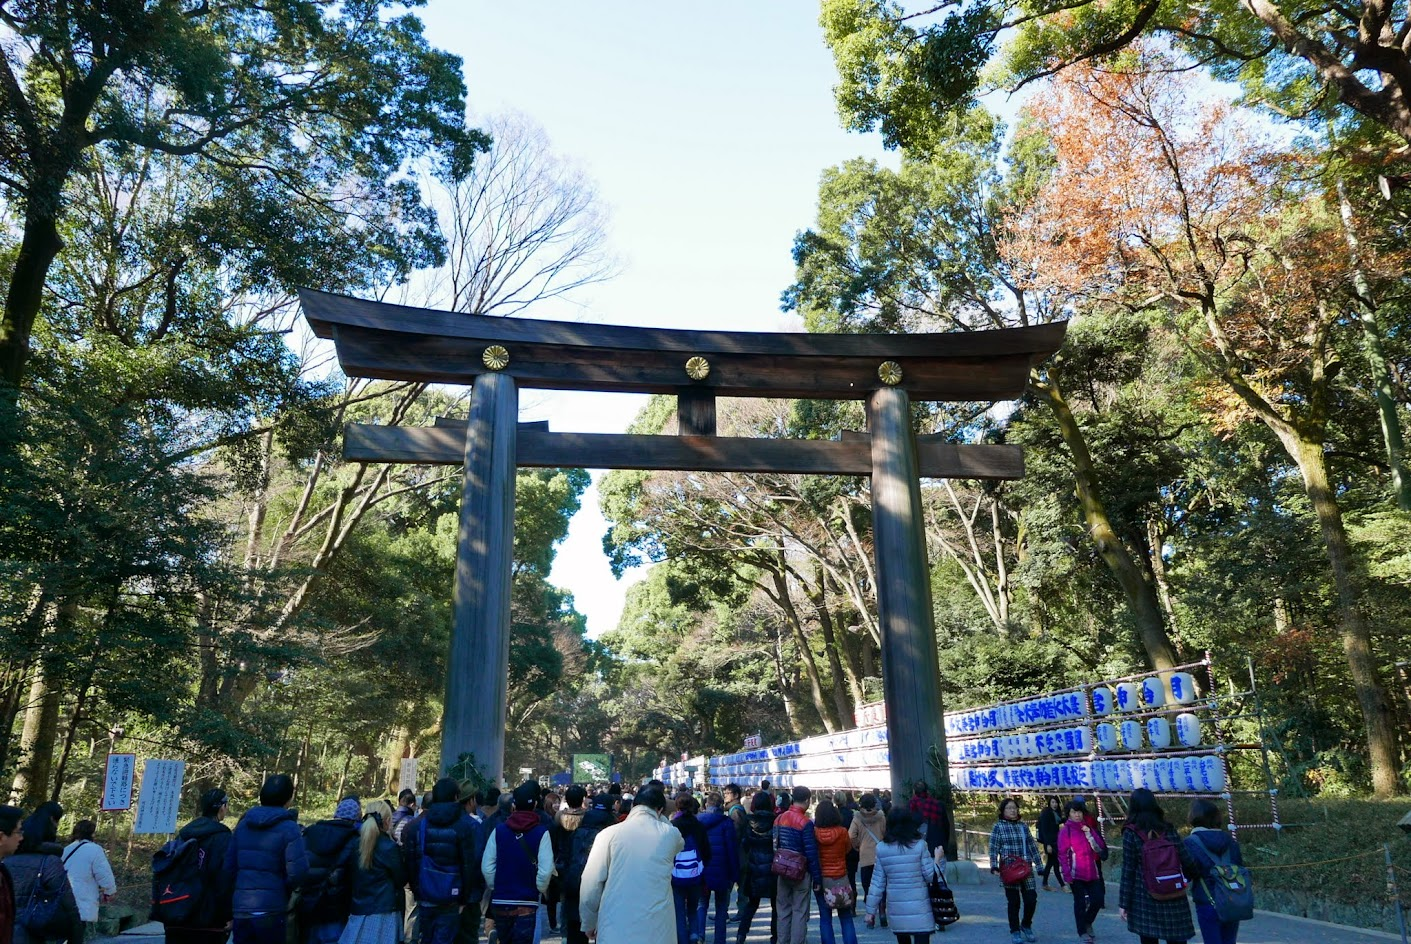 The most famous hatsumode spot in Tokyo is Meiji Jingu Shrine, which has over three million visitors over the first three days of the year. Look at all the people you can see on the path in front of us as it turns... this is not the only entrance to Meiji Shrine, but it is the main one.